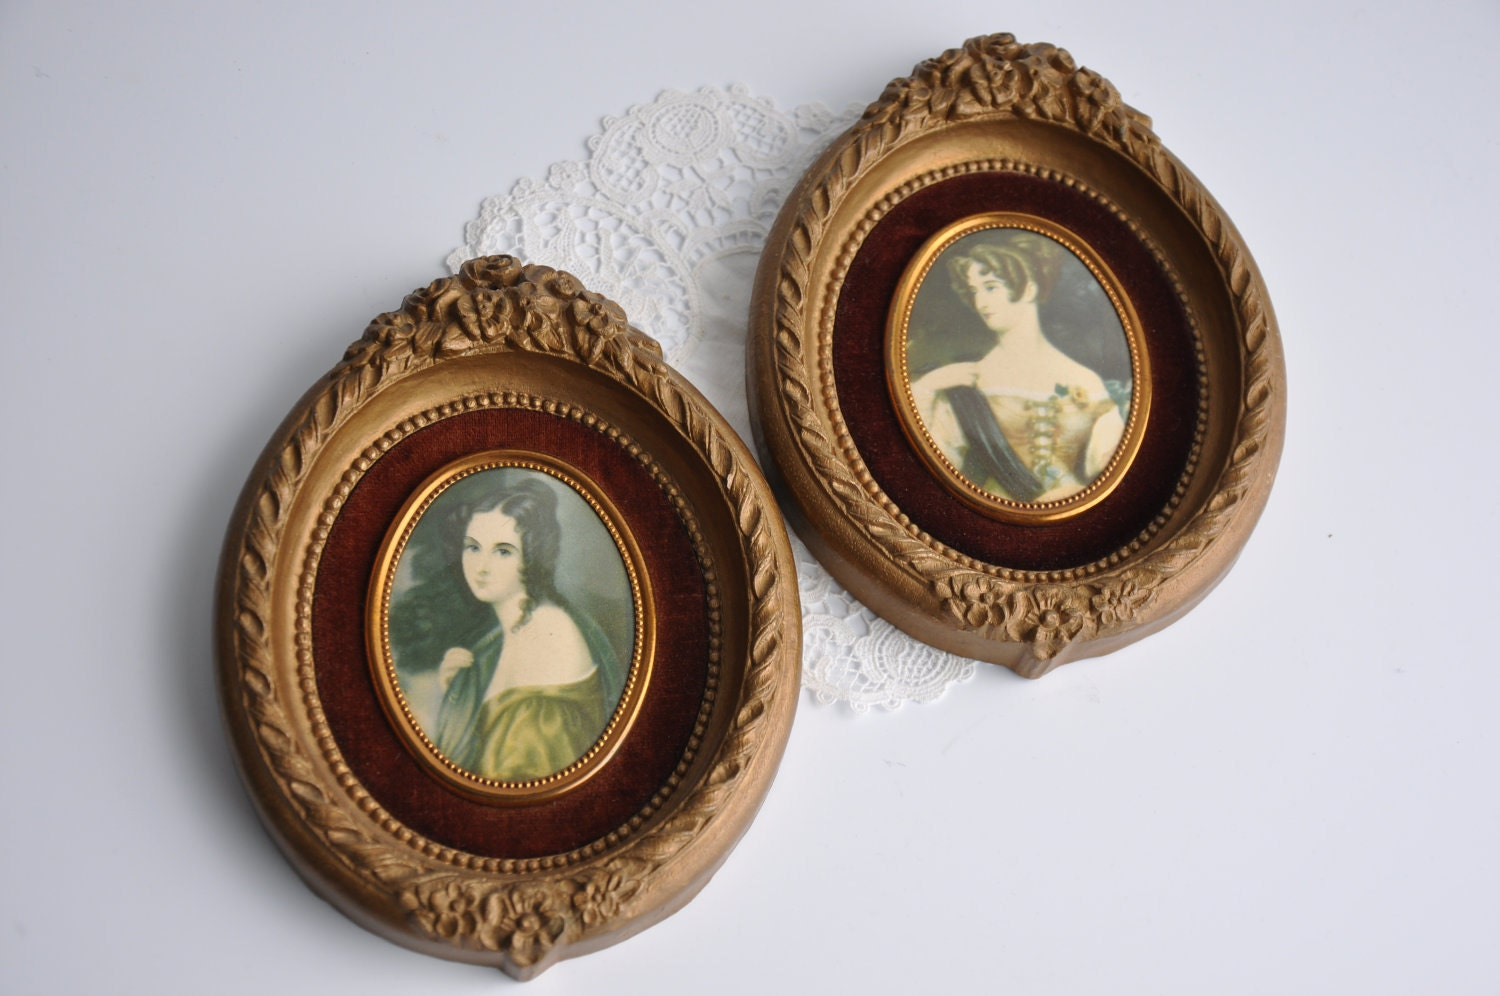 Victorian Cameo Portrait Plaque Victorian Decor Gold Rose Frame - rustandreliques